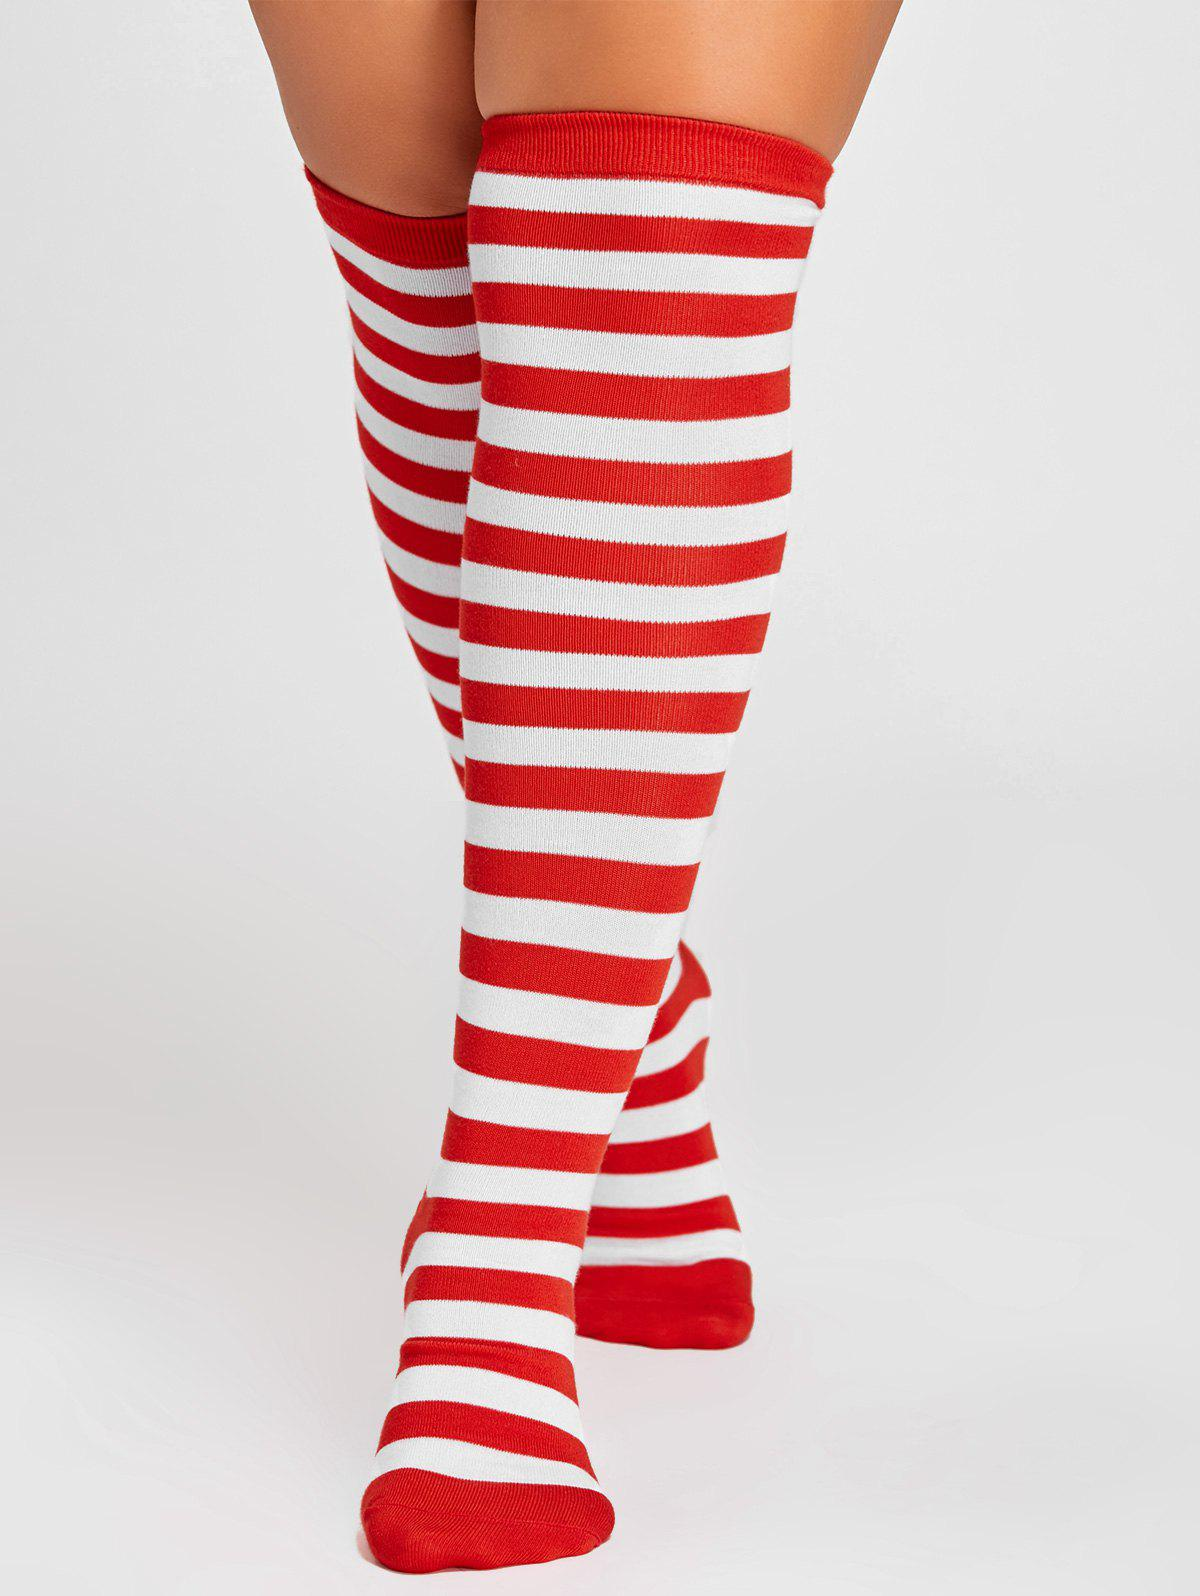 Striped Pattern Embellished Color Splice Thigh High SocksACCESSORIES<br><br>Size: ONE SIZE; Color: RED; Type: Socks; Group: Adult; Gender: For Women; Style: Fashion; Pattern Type: Striped; Material: Acrylic; Size(CM): Length: 18CM, Width: 8.5CM, Height: 50CM; Weight: 0.1000kg; Package Contents: 1 x Socks(Pair);